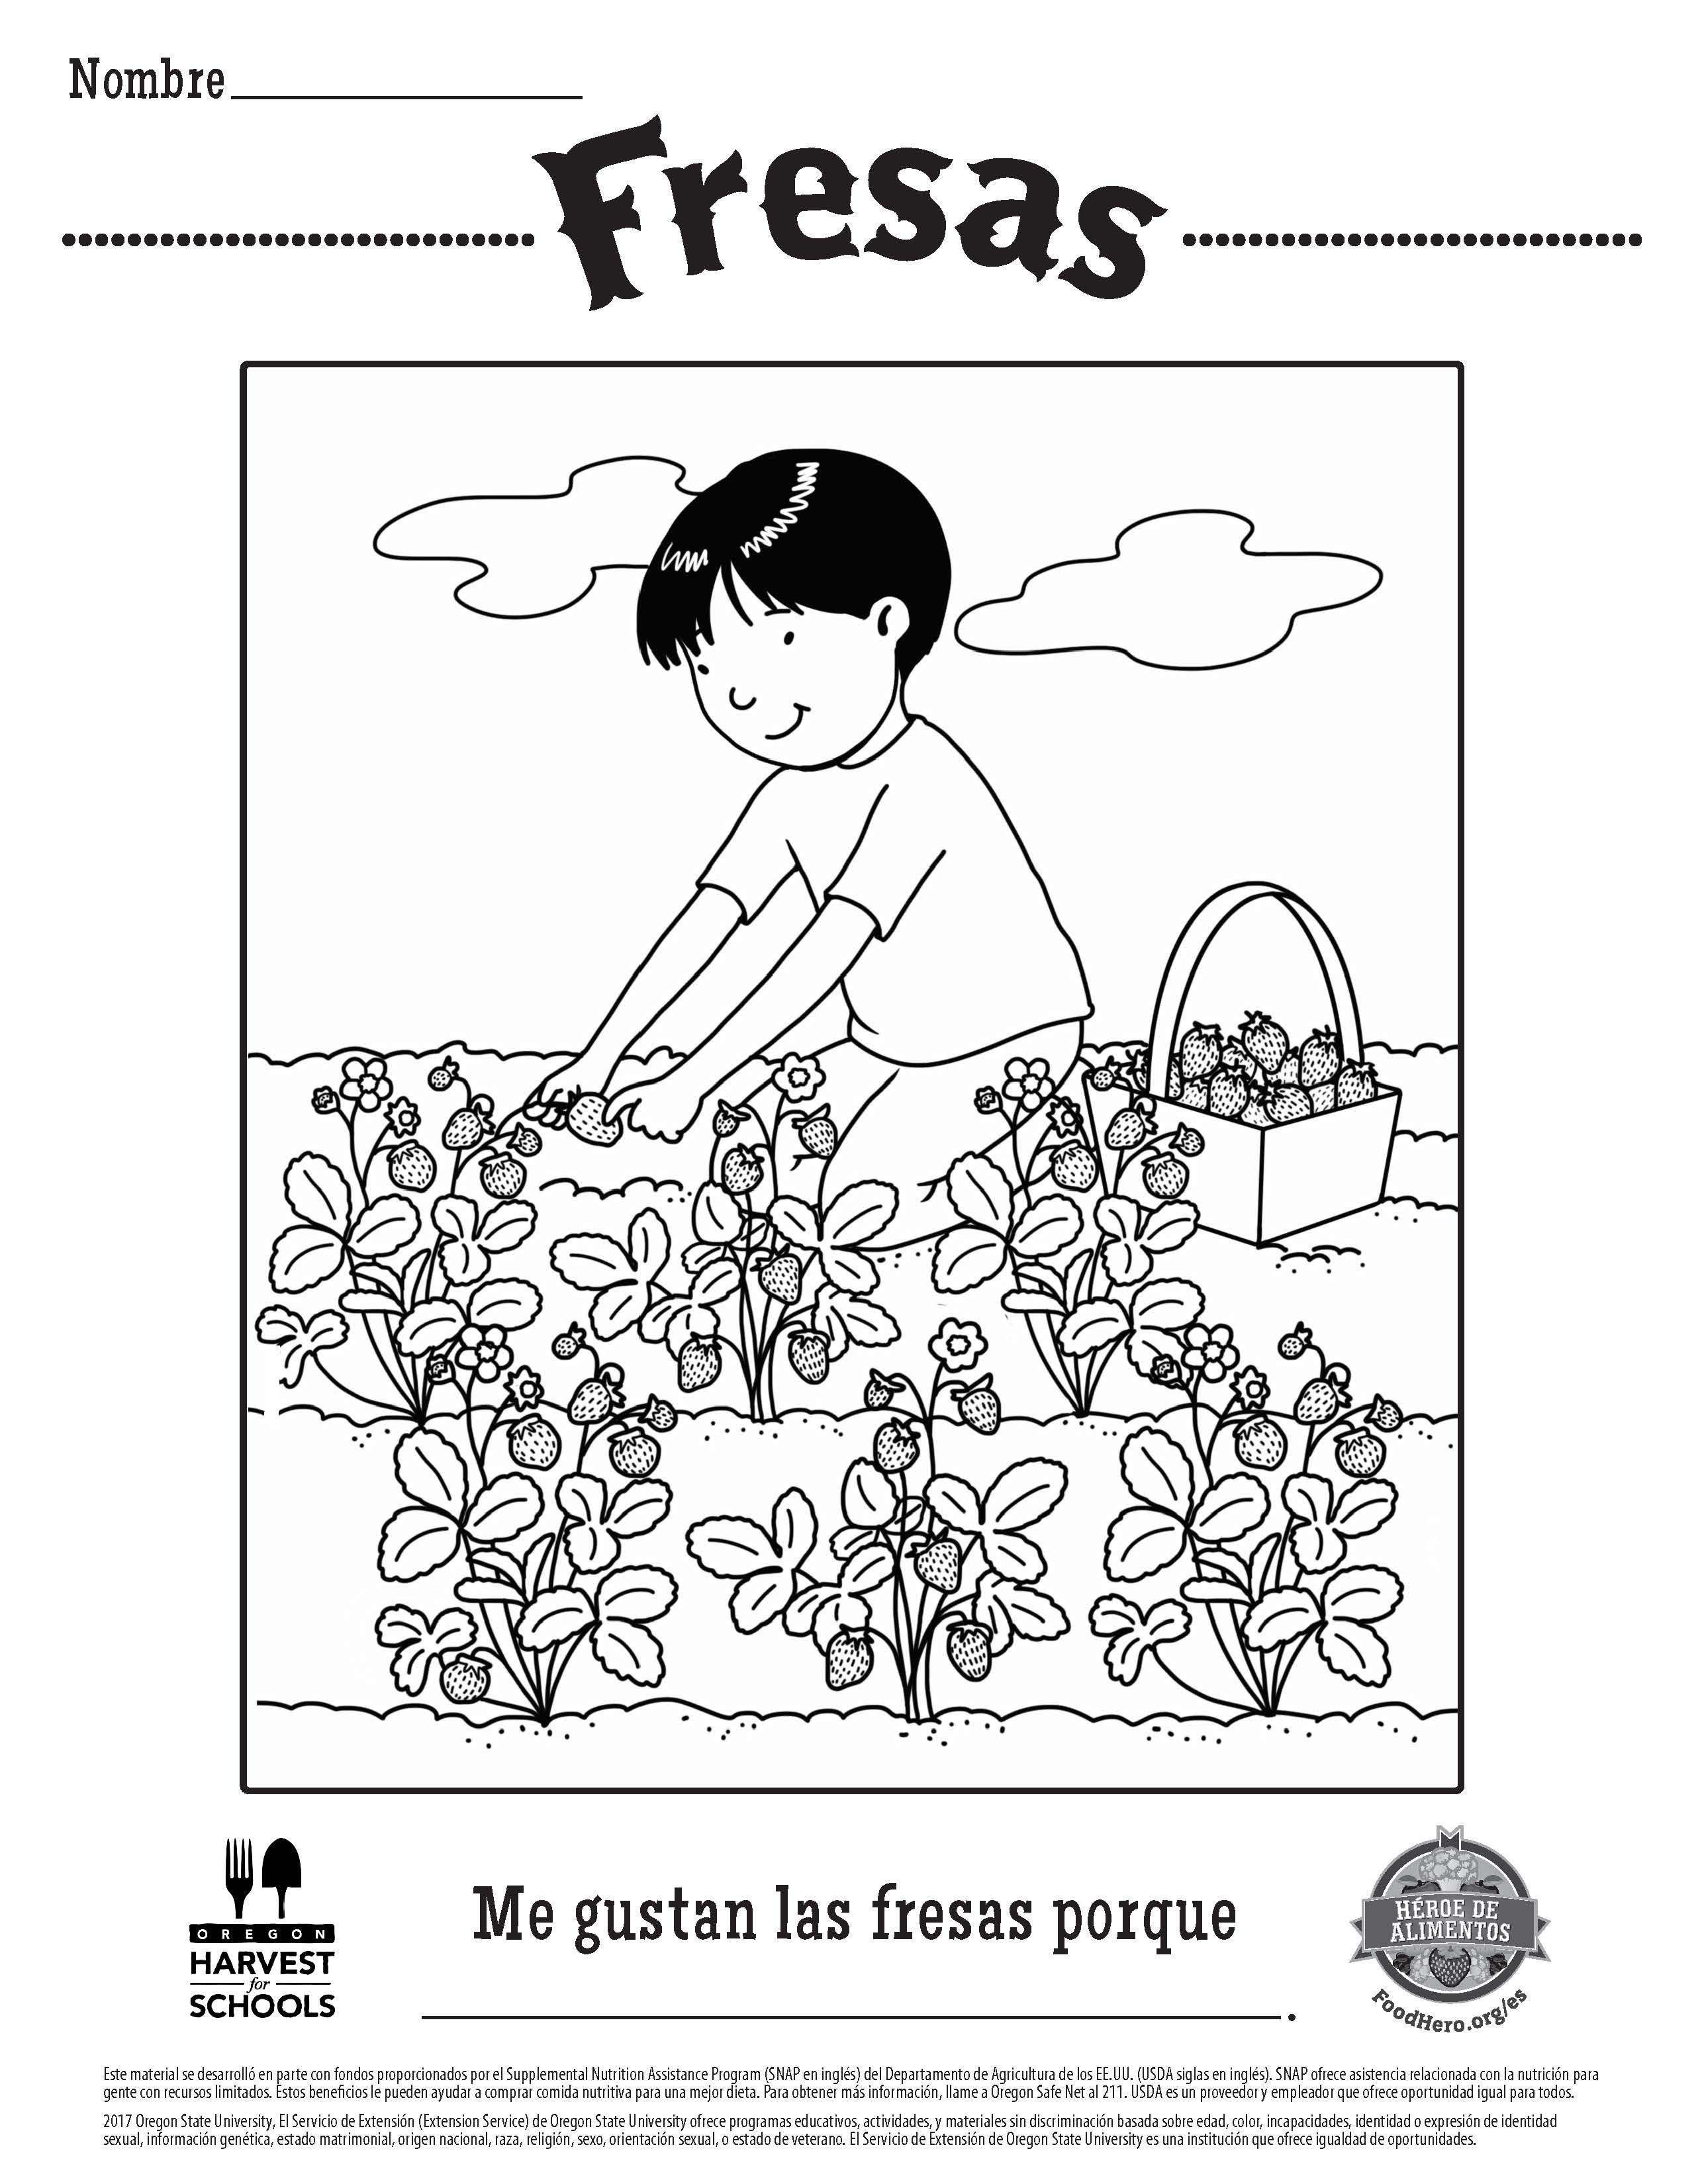 free printable food hero childrens coloring sheet in spanish strawberries coloringpage